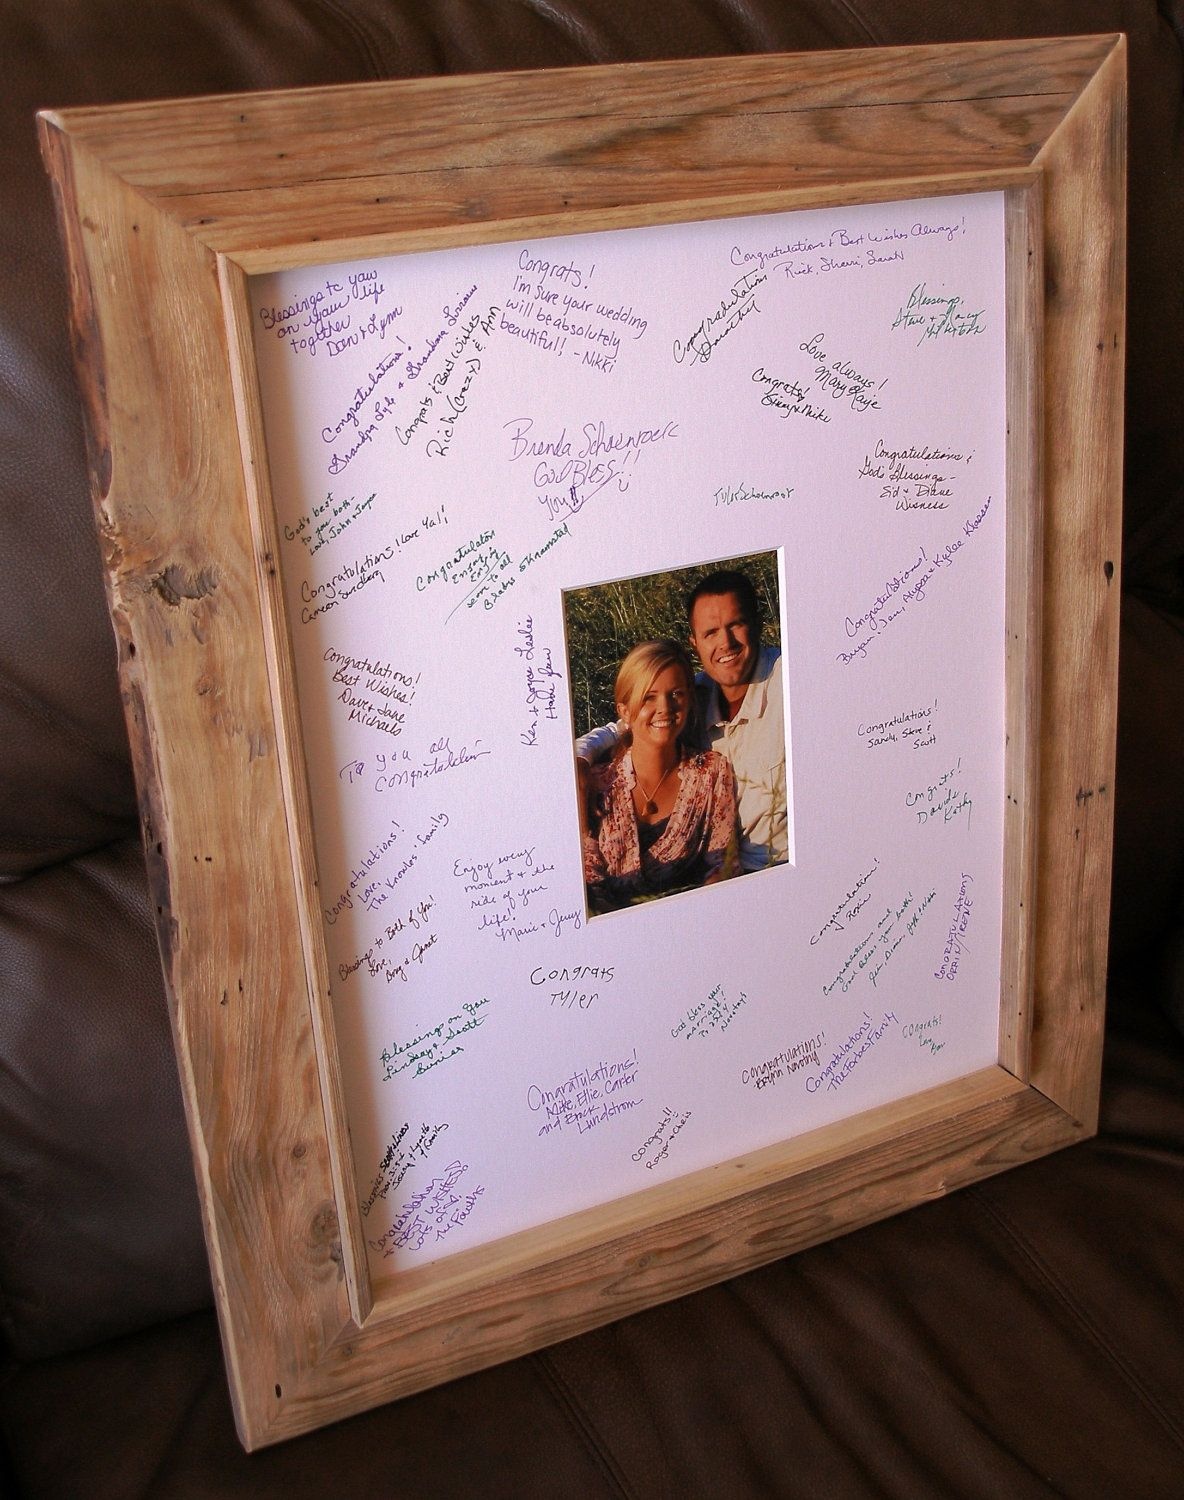 Rustic Personalized Frame With Guest Signature For Memories Good